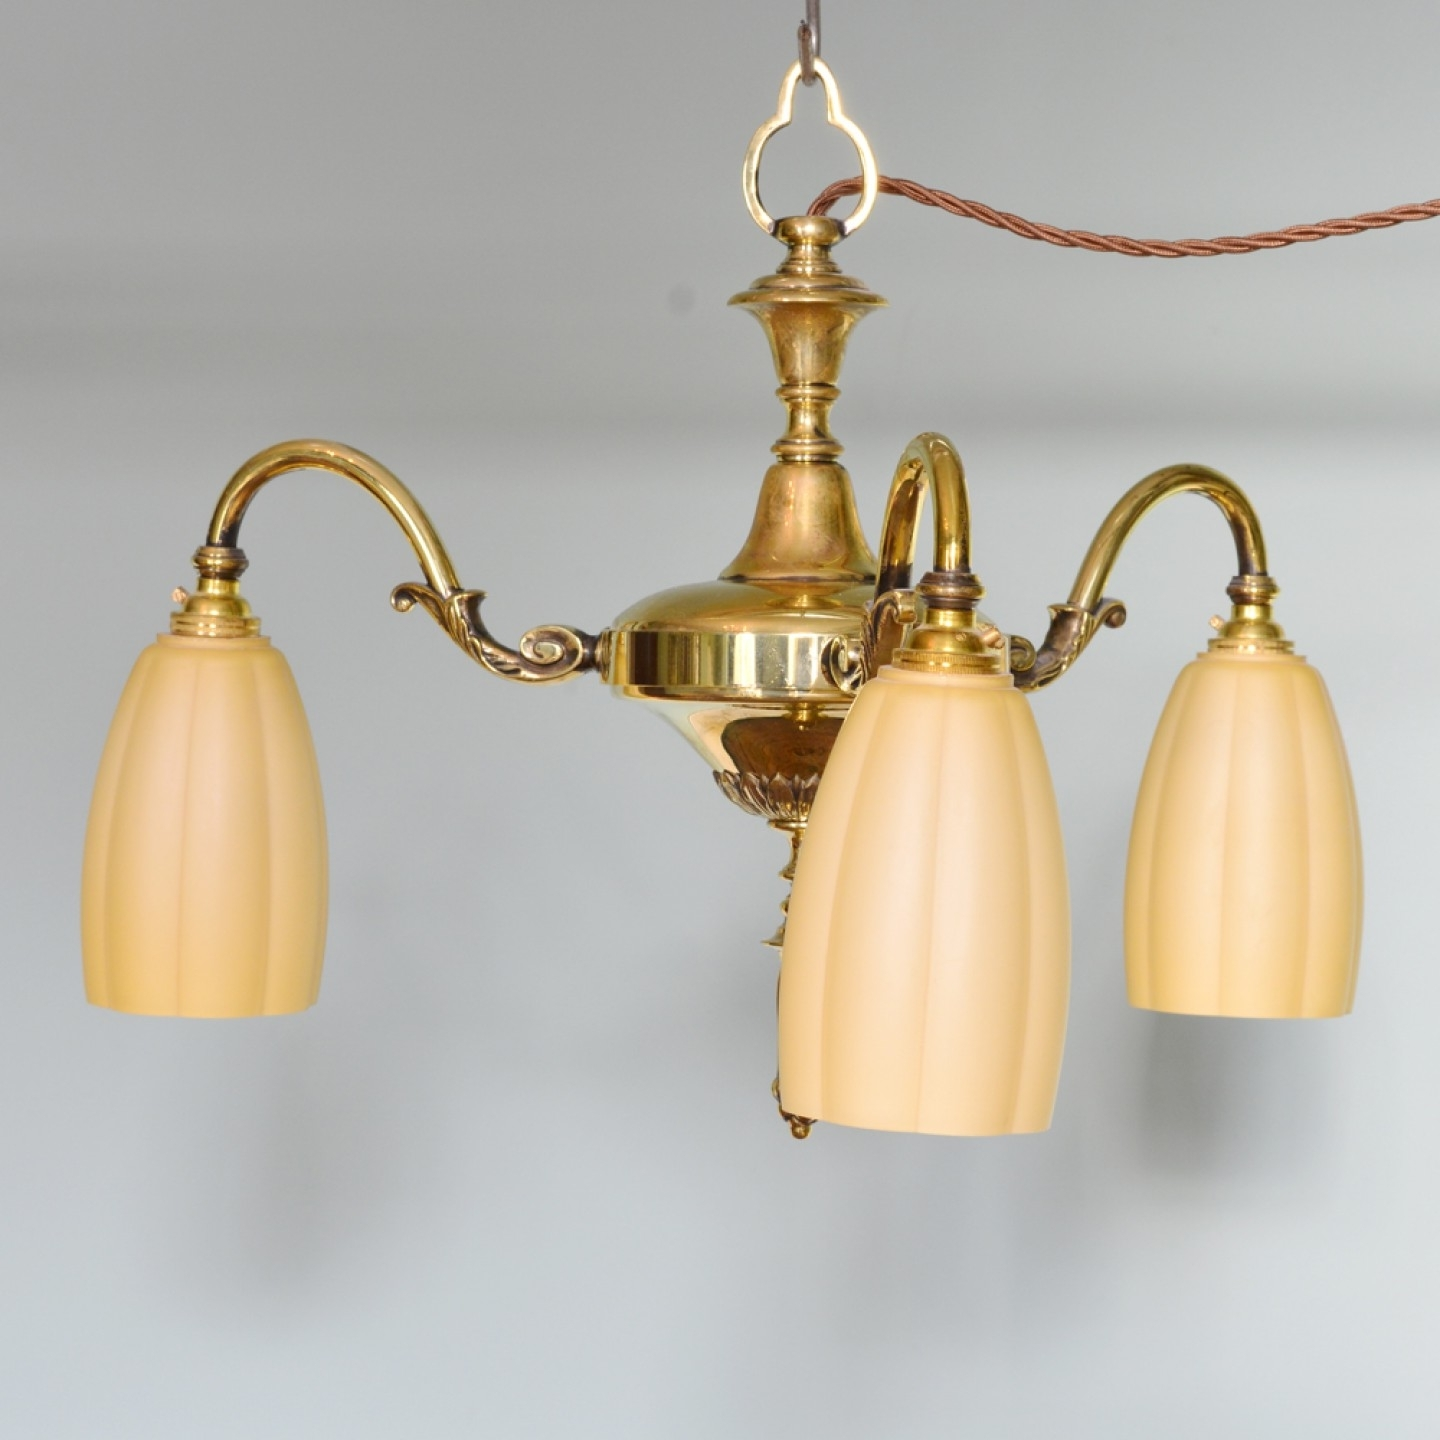 Edwardian Chandelier With Regard To 2018 Edwardian Chandelier – Lassco – England's Prime Resource For (View 9 of 20)